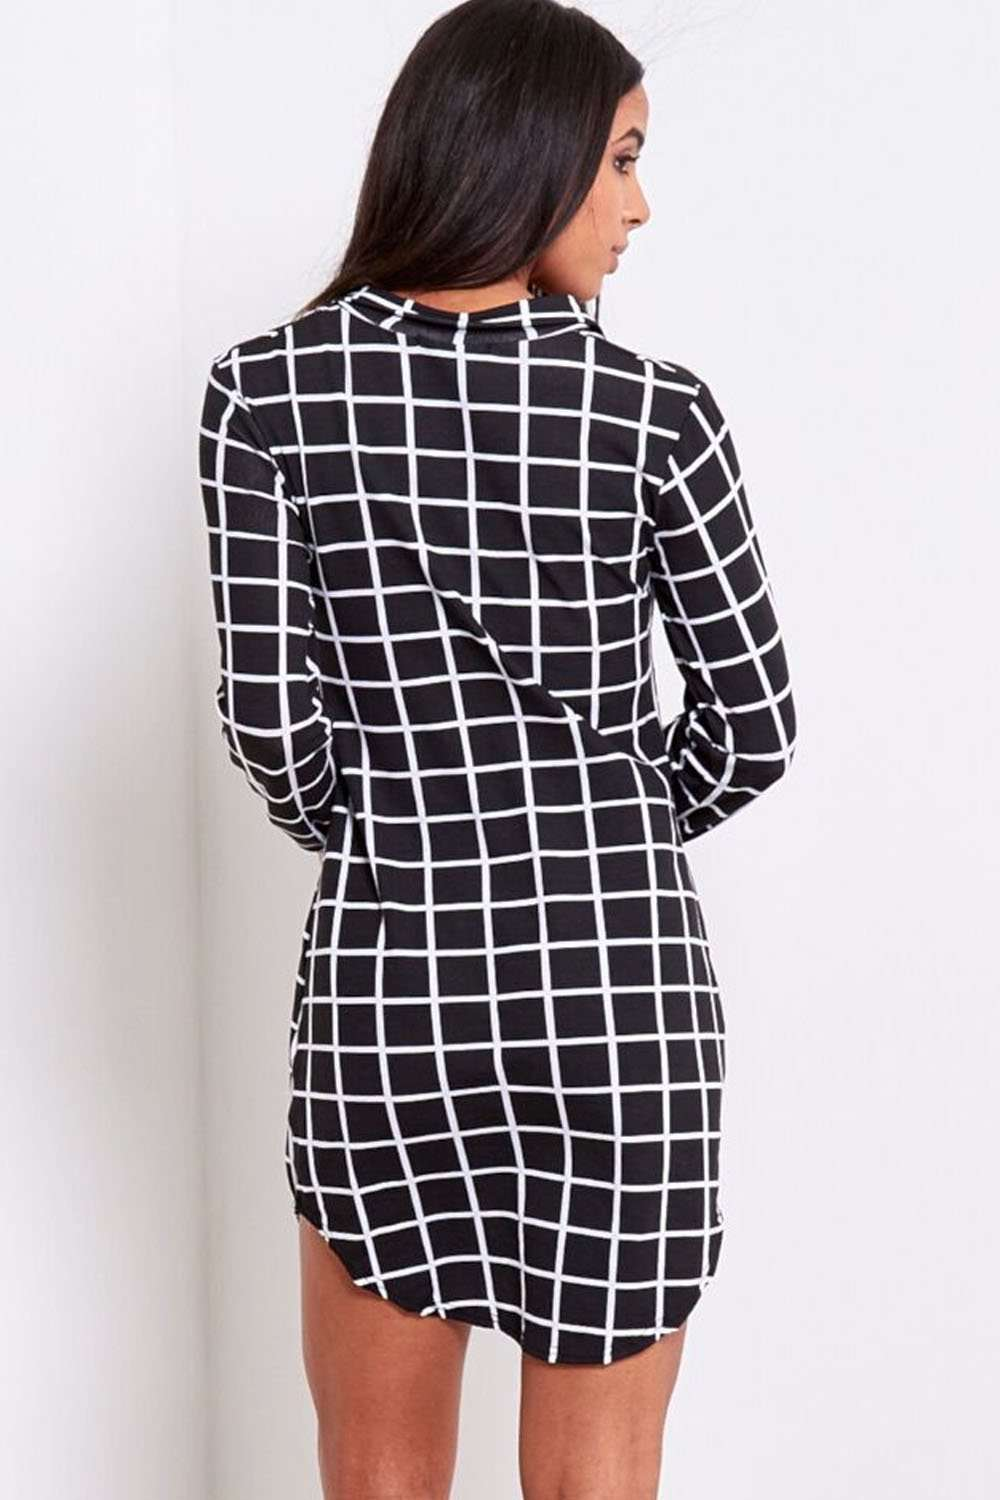 Iris Monochrome Tartan Shirt Dress - bejealous-com